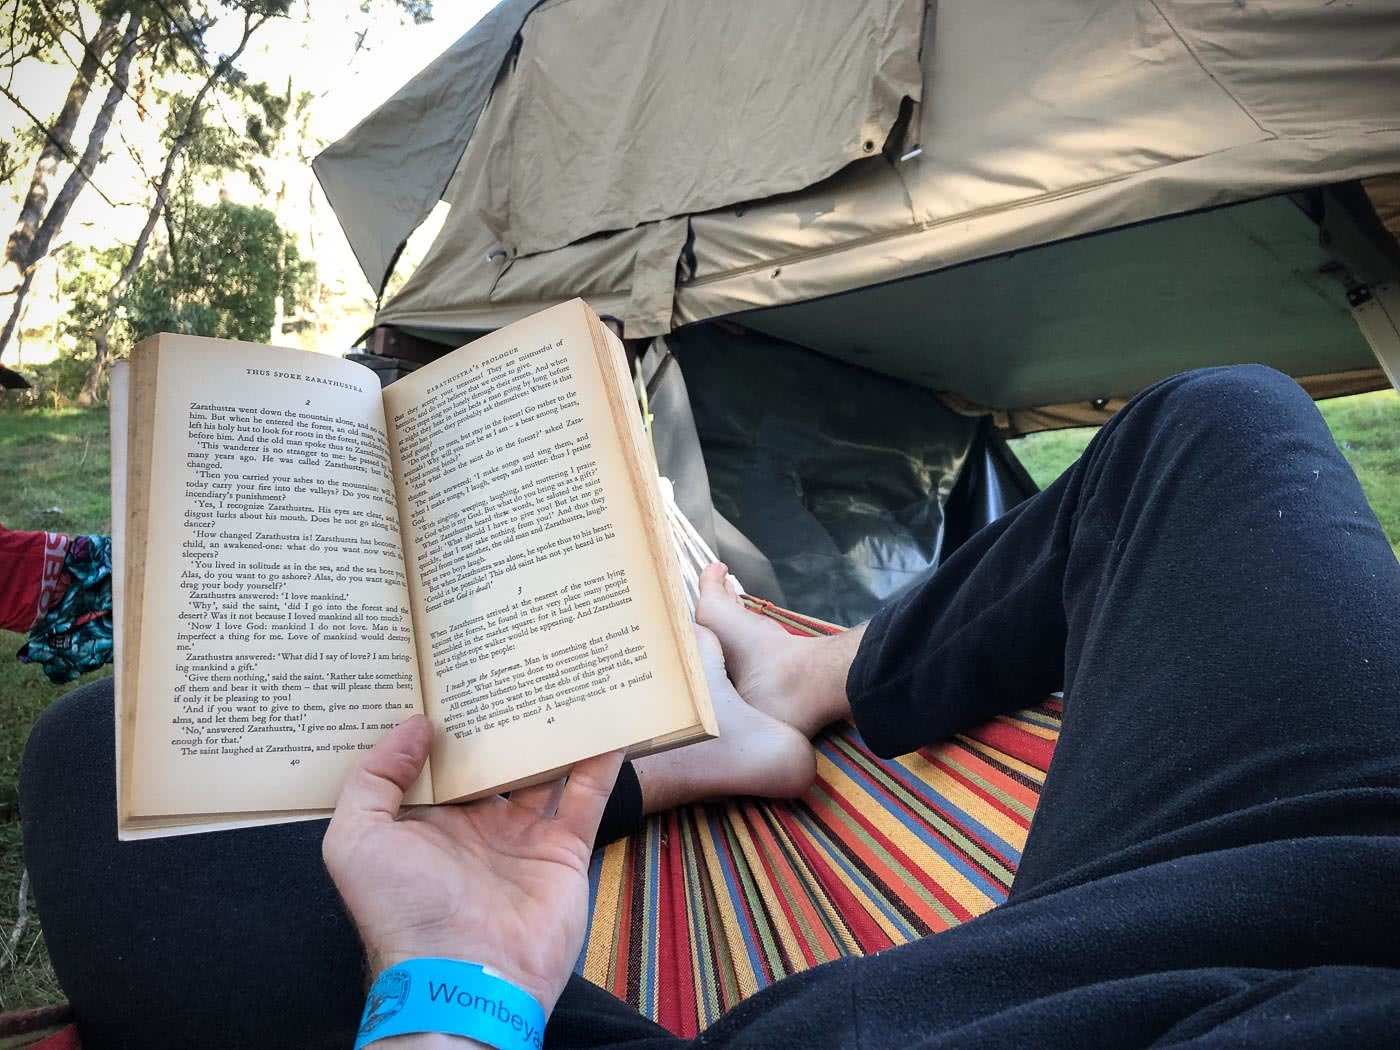 Exploring Wombeyan Caves // A Spelunkin' Marbleous Weekend (NSW), photo by Tim Ashelford, hammock, reading, book, nsw